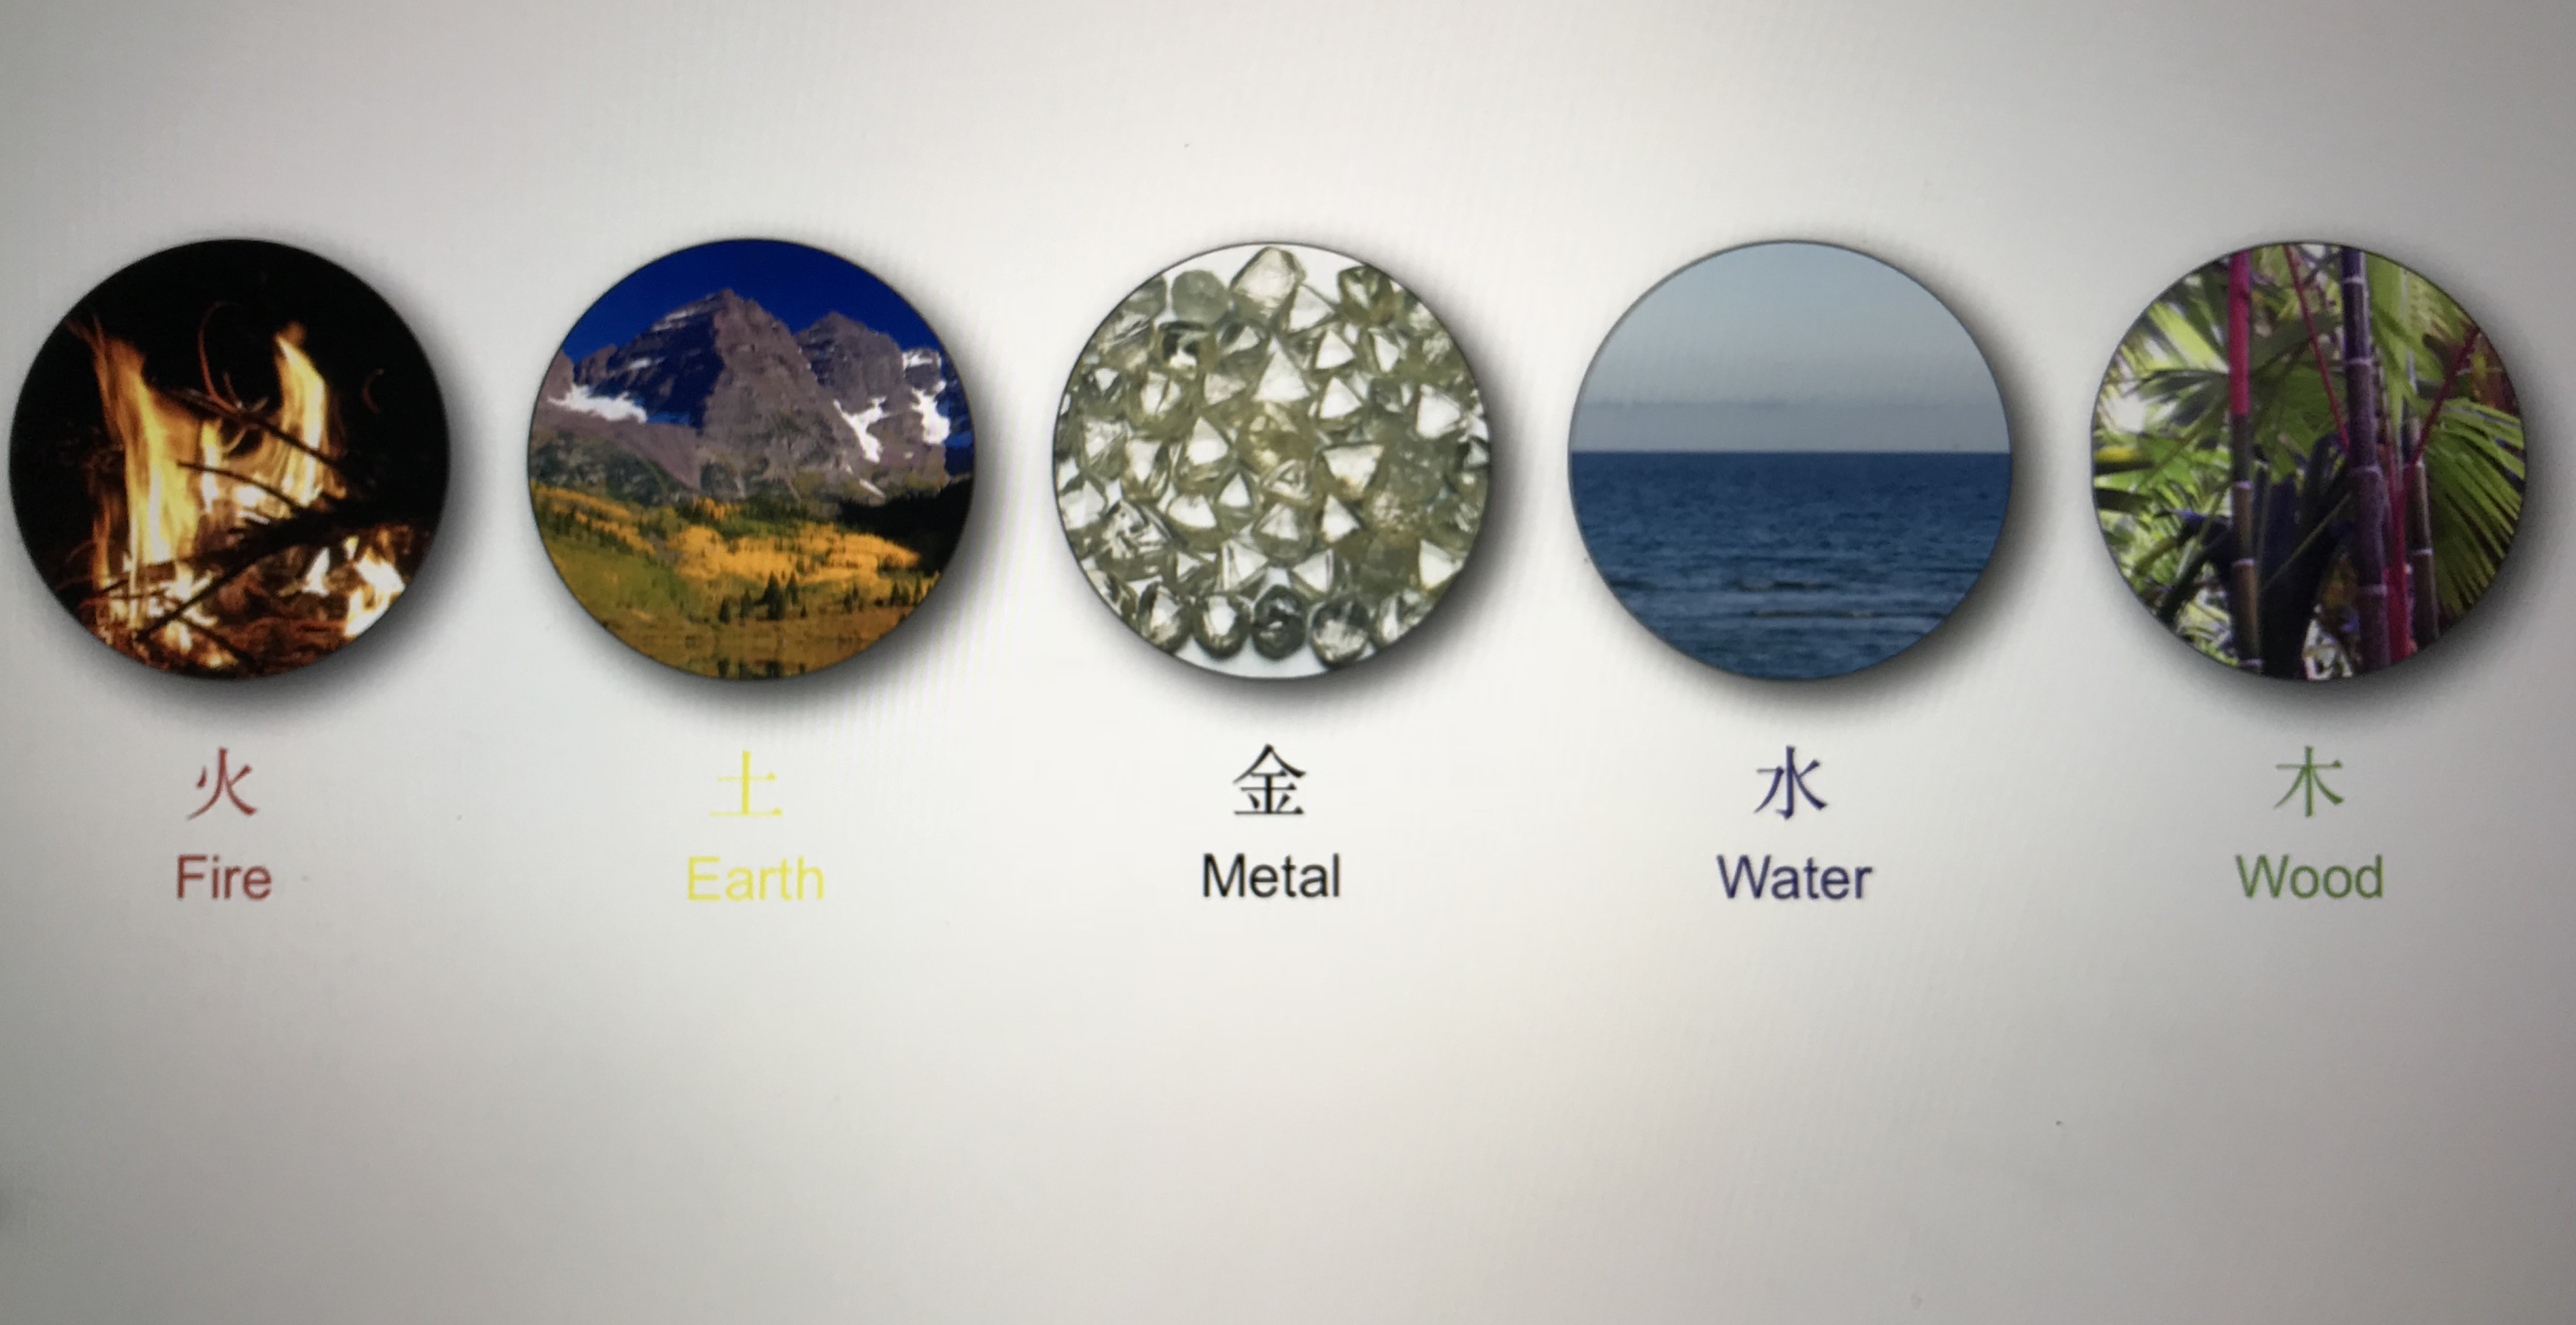 The 5 Elements: Fire, Earth, Metal, Water, Wood